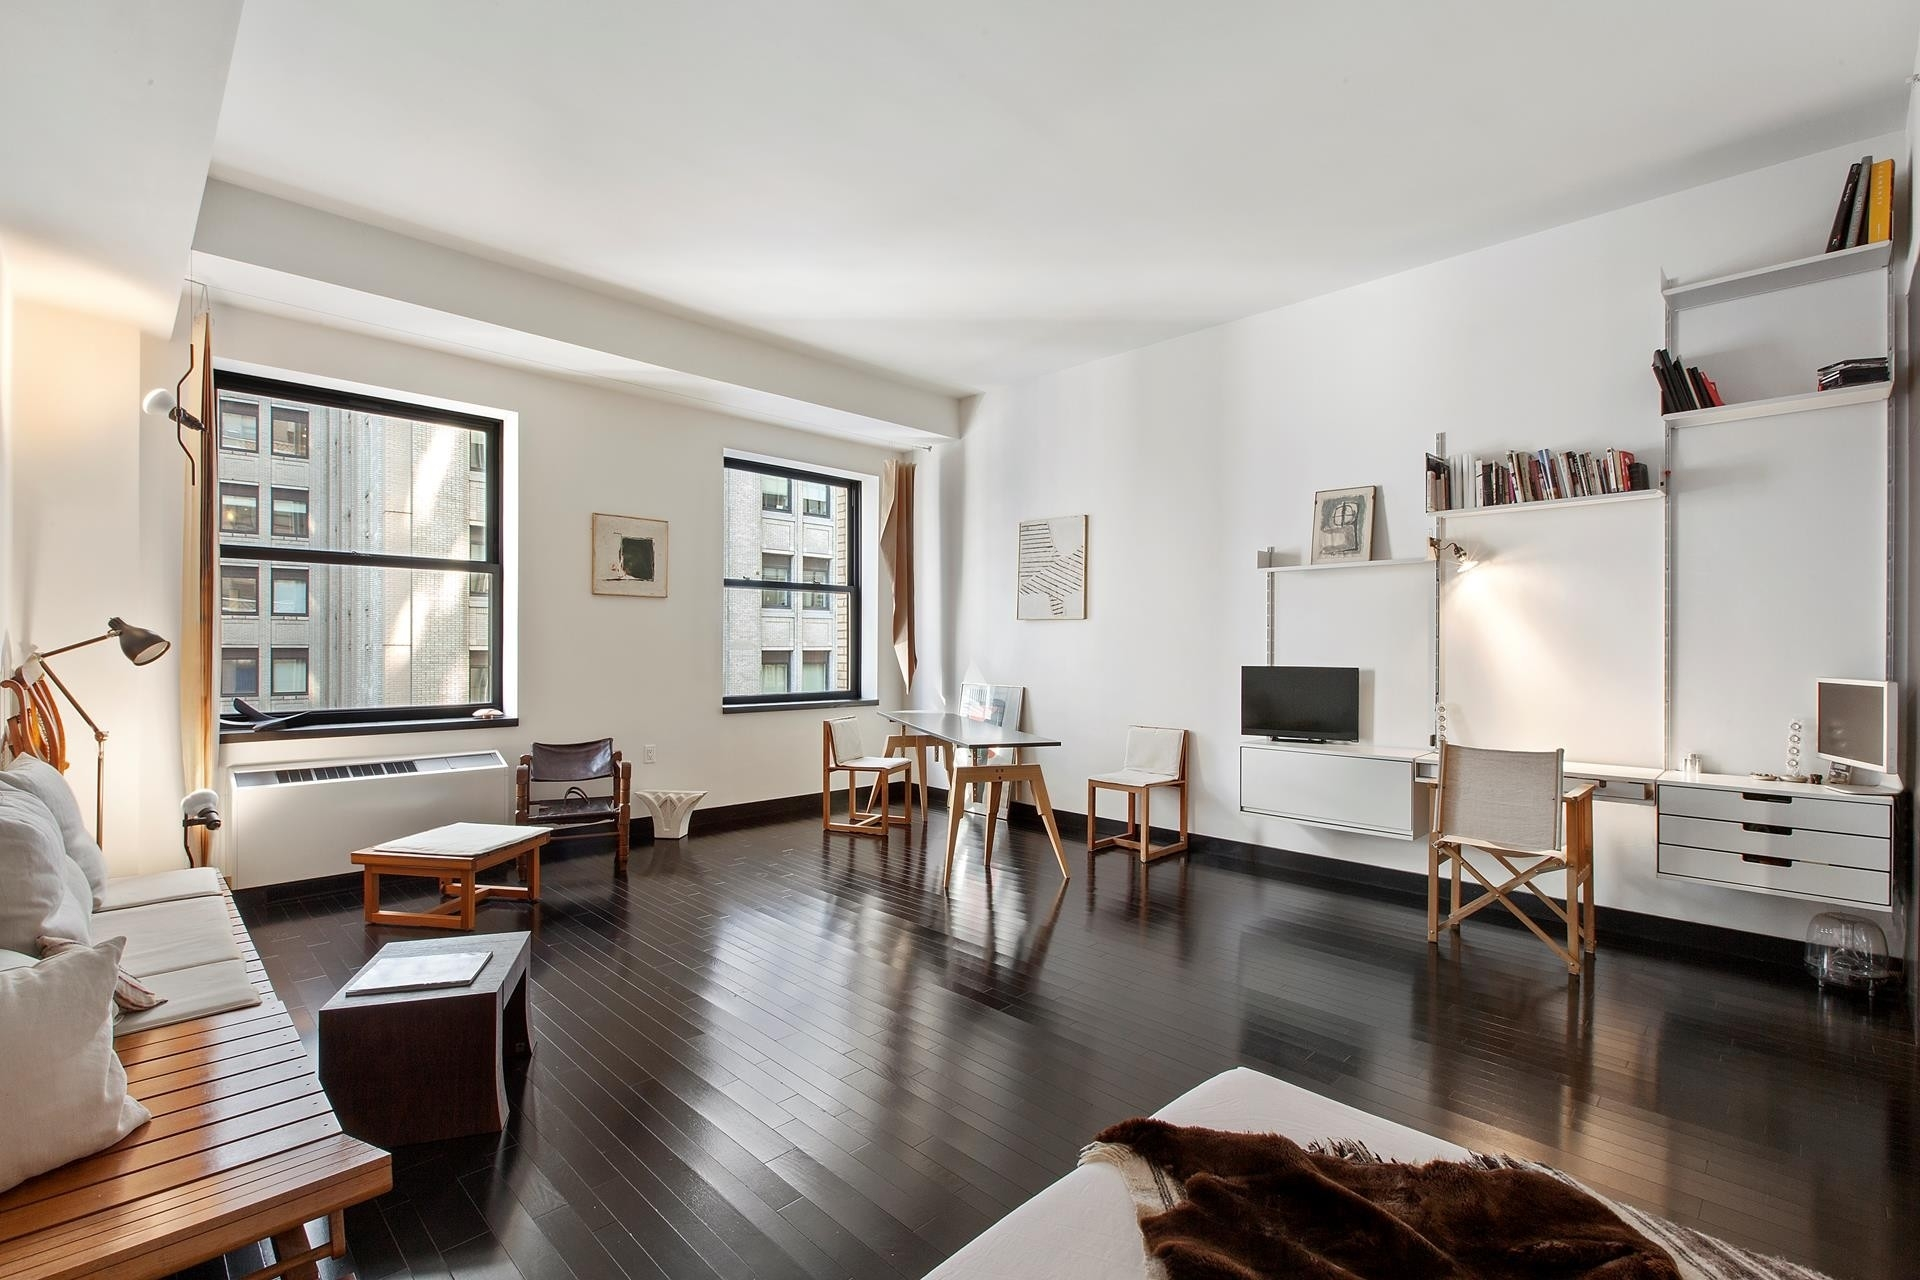 1. Condominiums at 20 Pine - The Collection, 20 Pine St, 2903 Financial District, New York, NY 10005